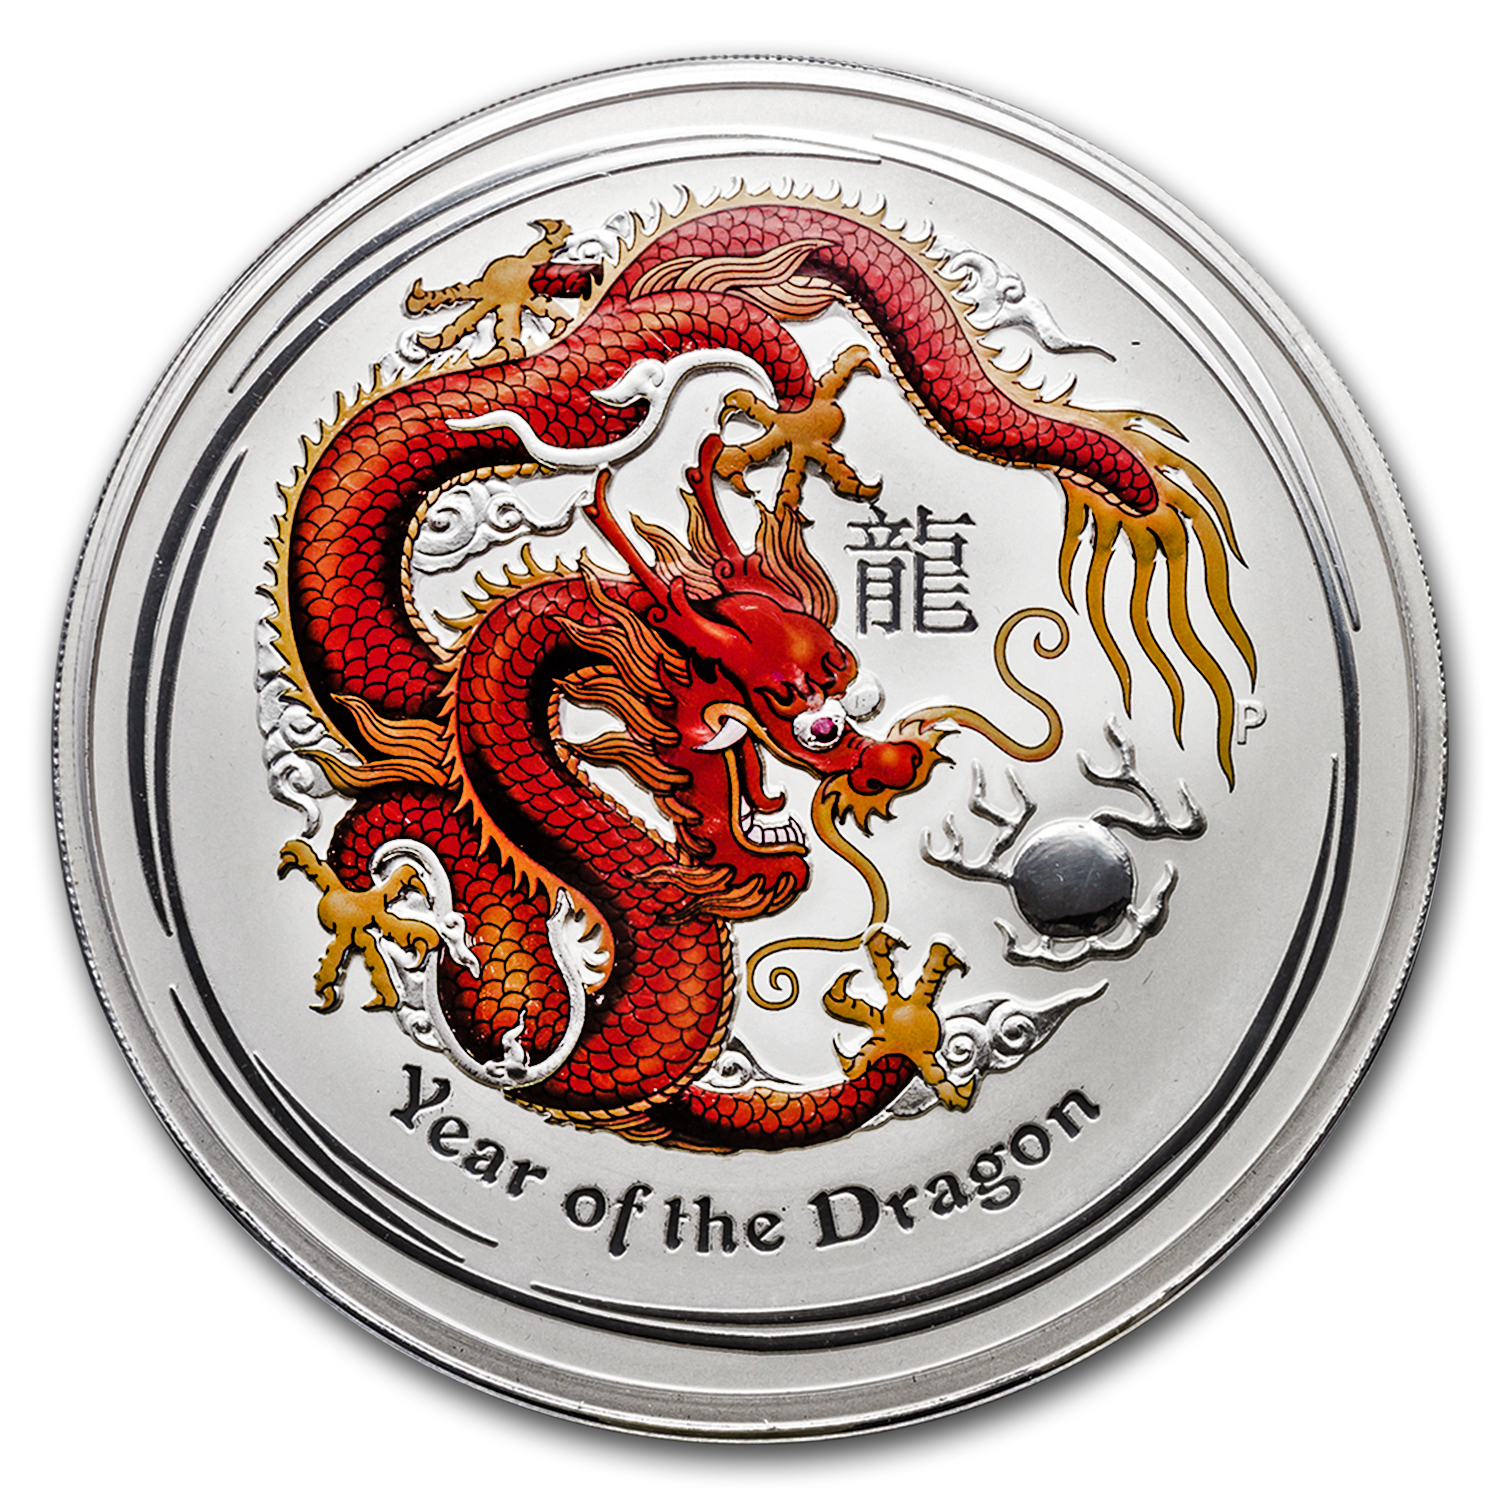 2012 Year of the Dragon Gemstone Eye - 1 Kilo Silver Colorized